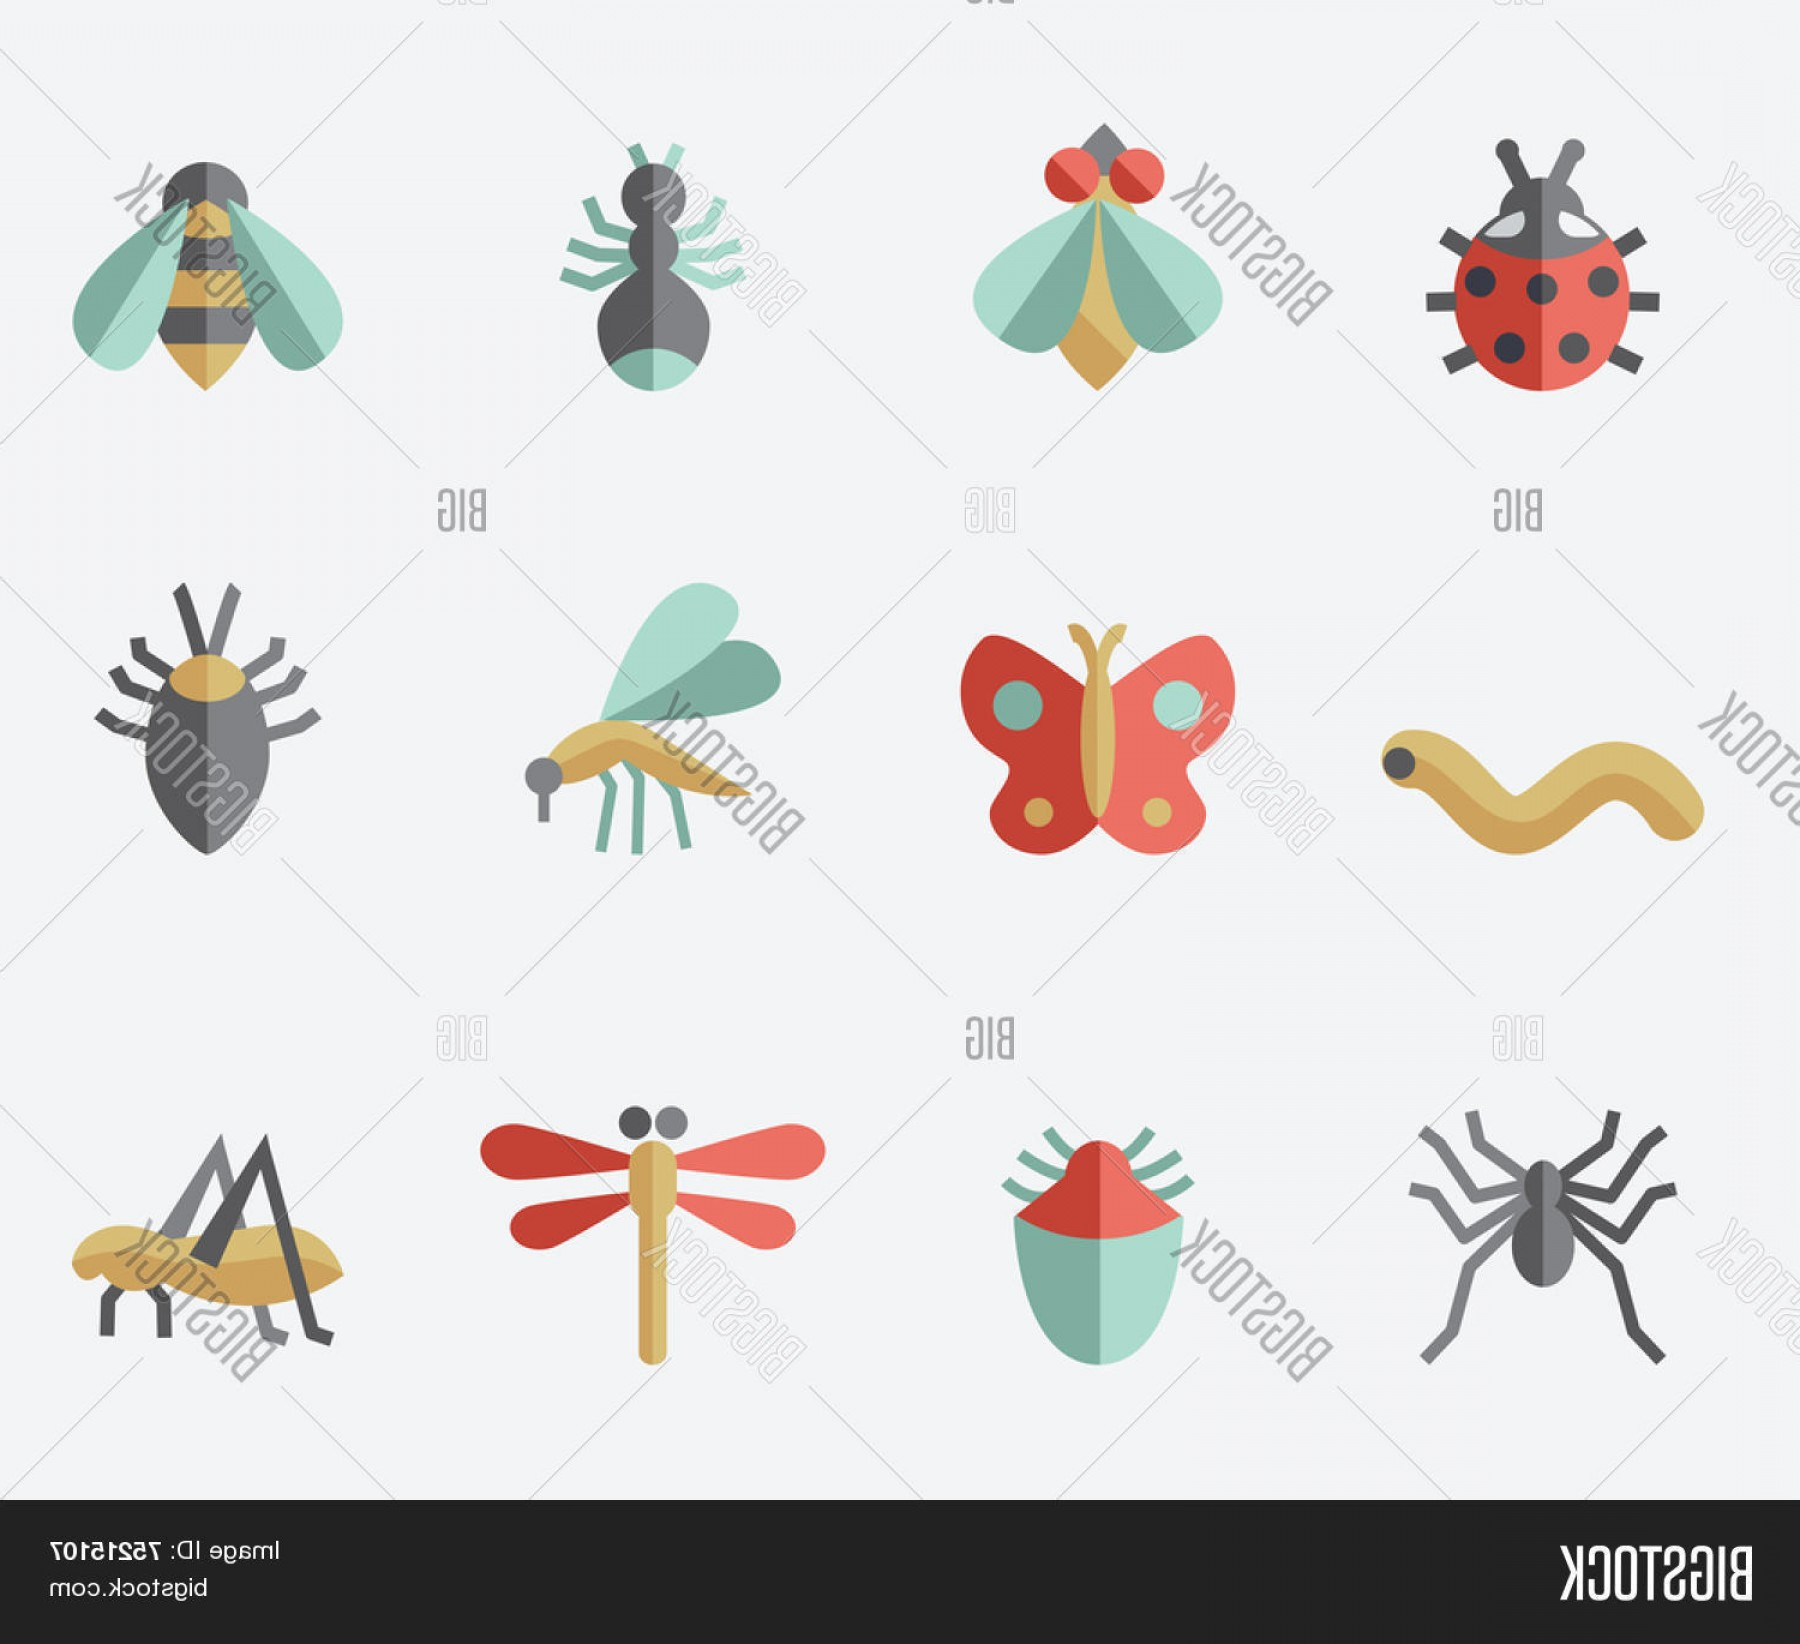 Vector Insect Light: Stock Vector Insect Iconsc Flat Design Setc Light Background